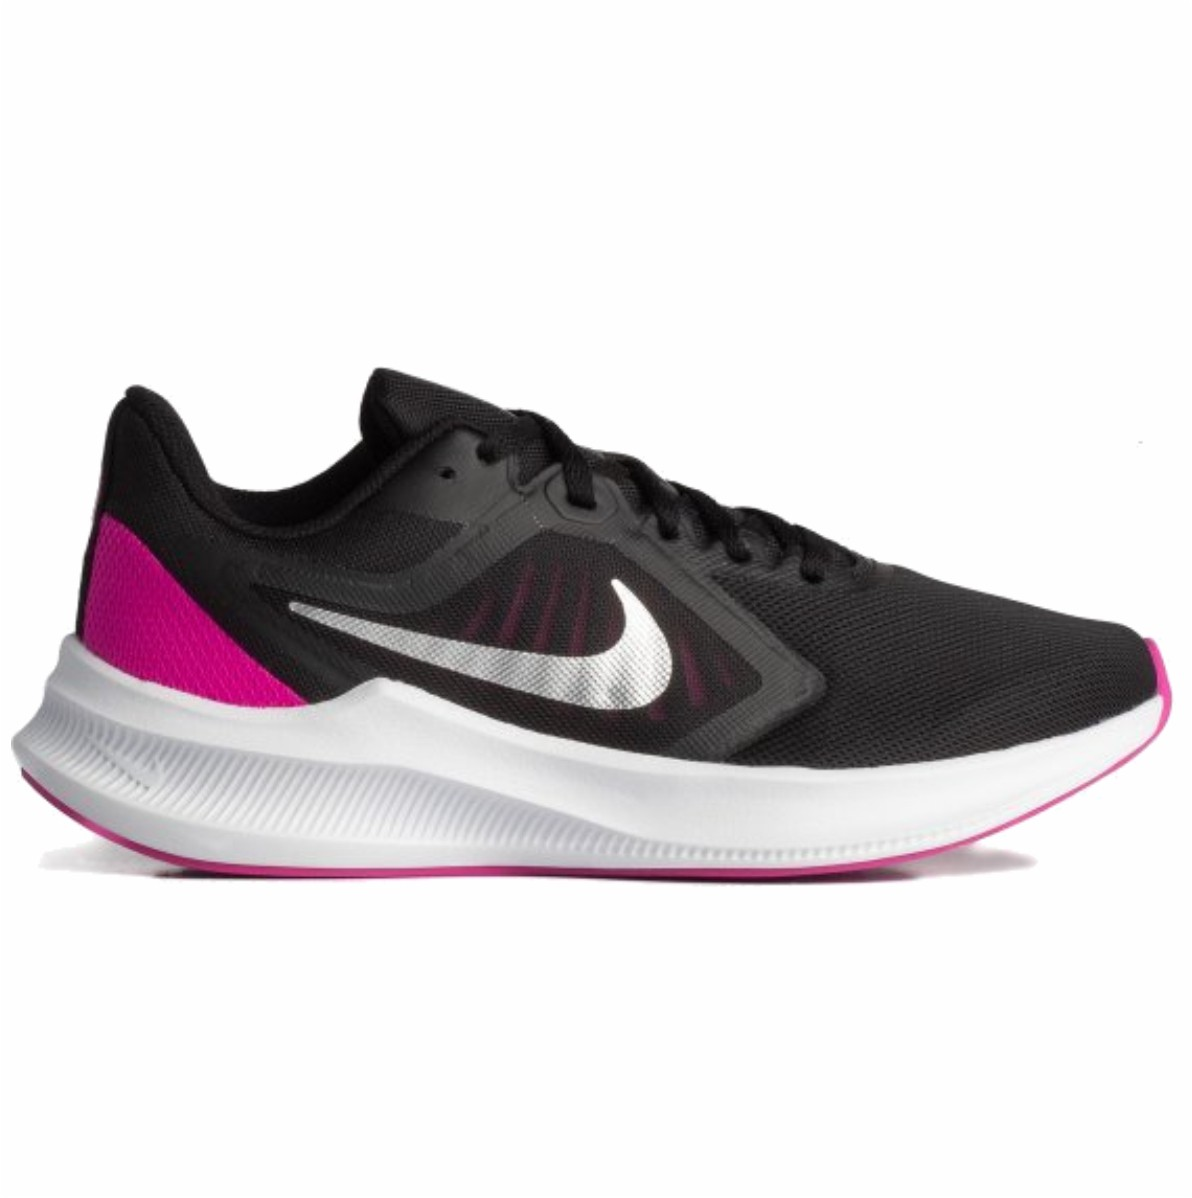 Tenis Nike Downshifter 10 Feminino Running Training